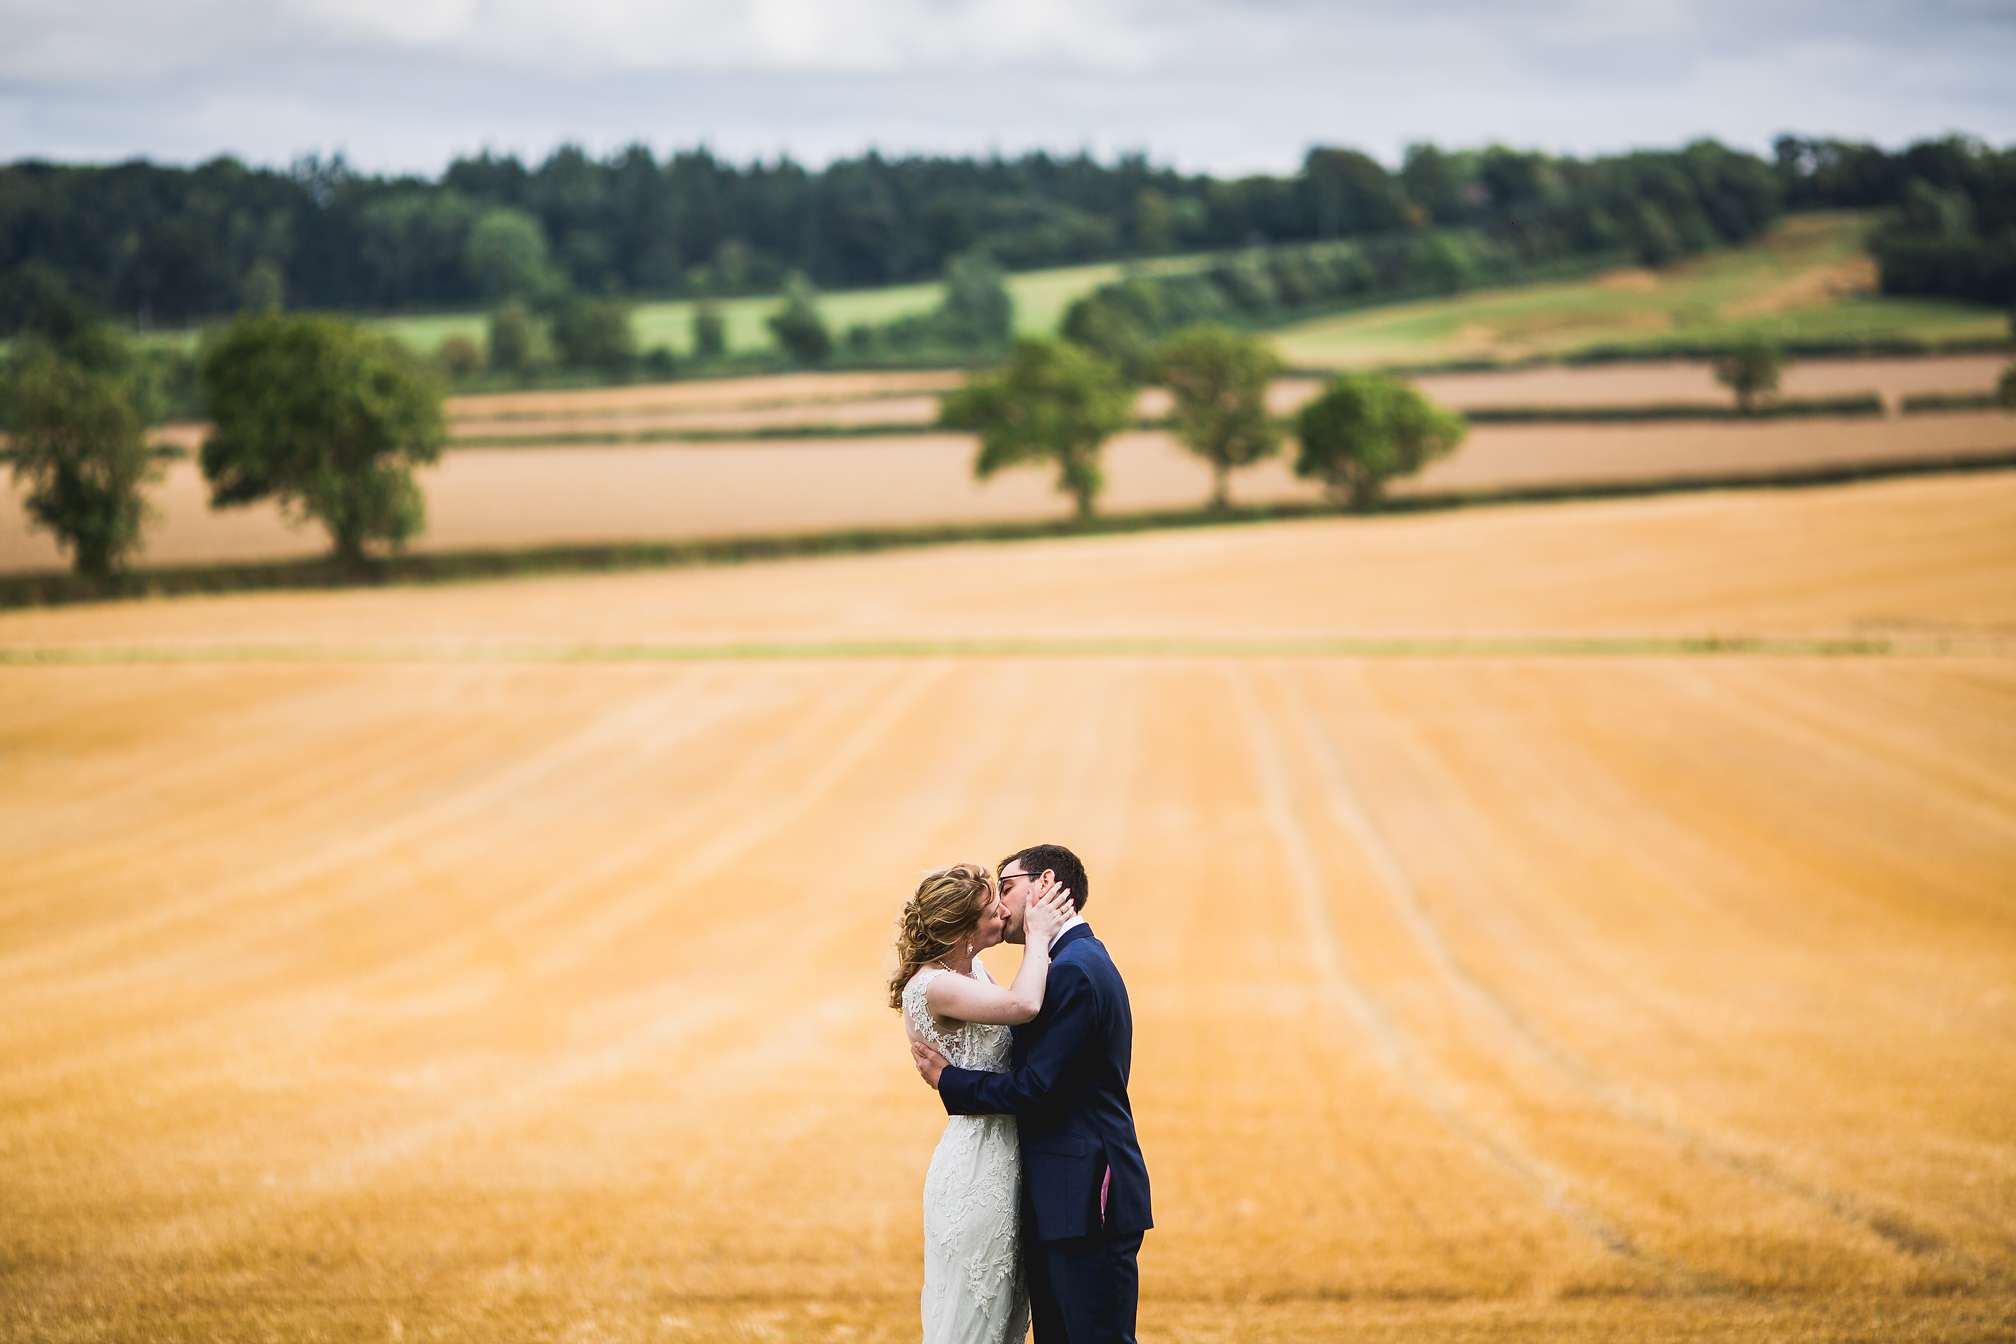 MyWed Editors Choice - Kissing in a Field